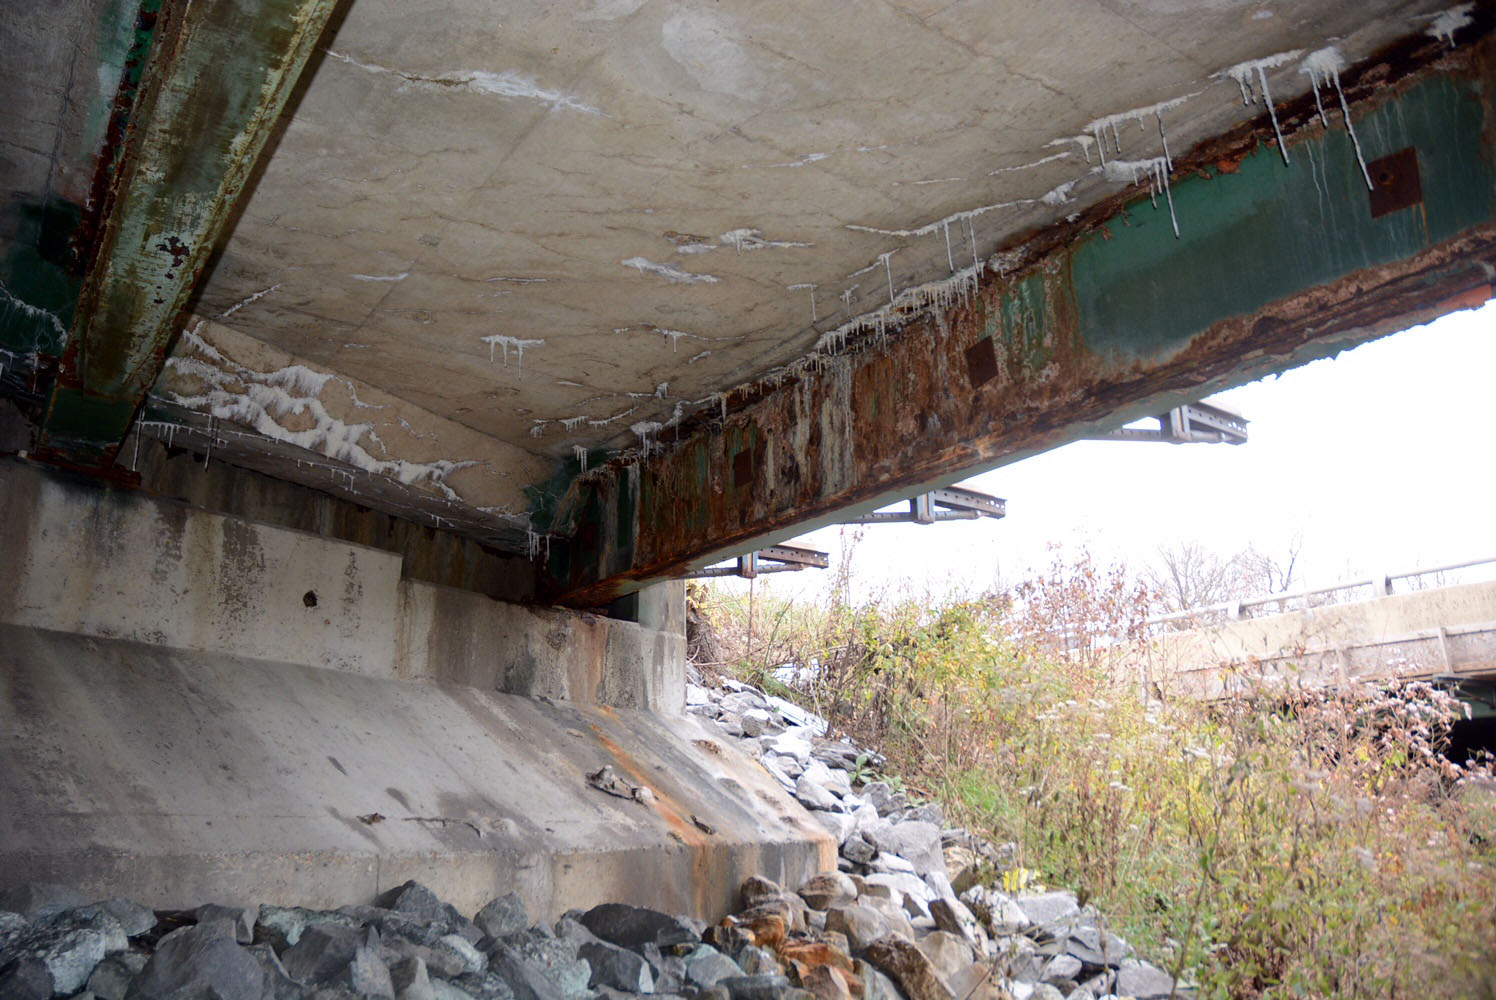 Two structurally deficient bridges carry traffic on the Capital Beltway above Suitland Road near Joint Base Andrews. The beams underneath the bridges show visual signs of corrosion. (WTOP/Dave Dildine)